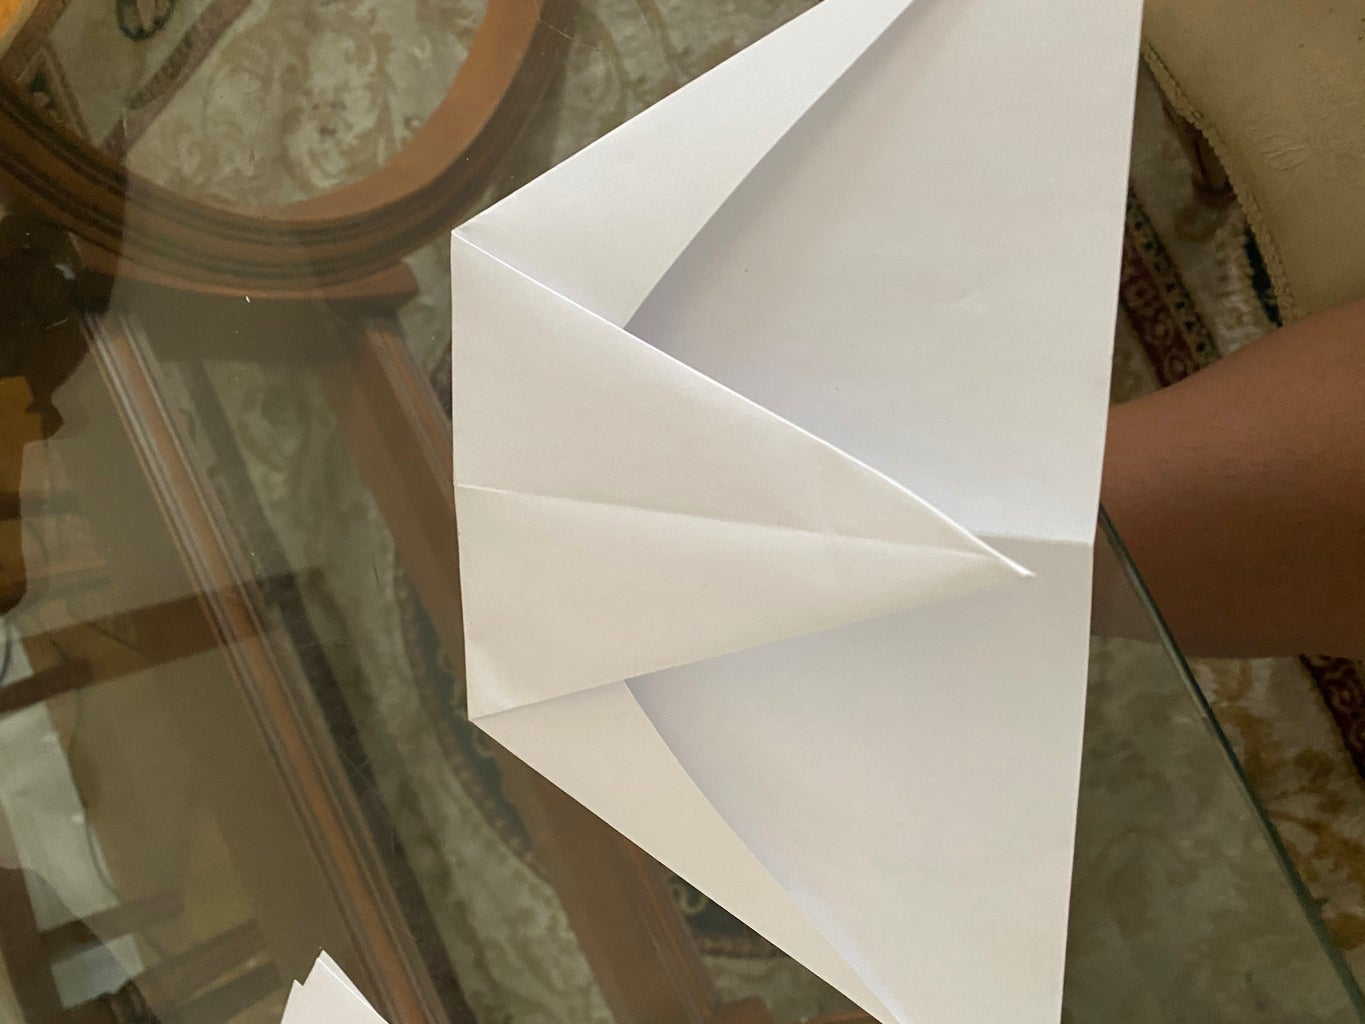 Step 6: Fold the Top Like This